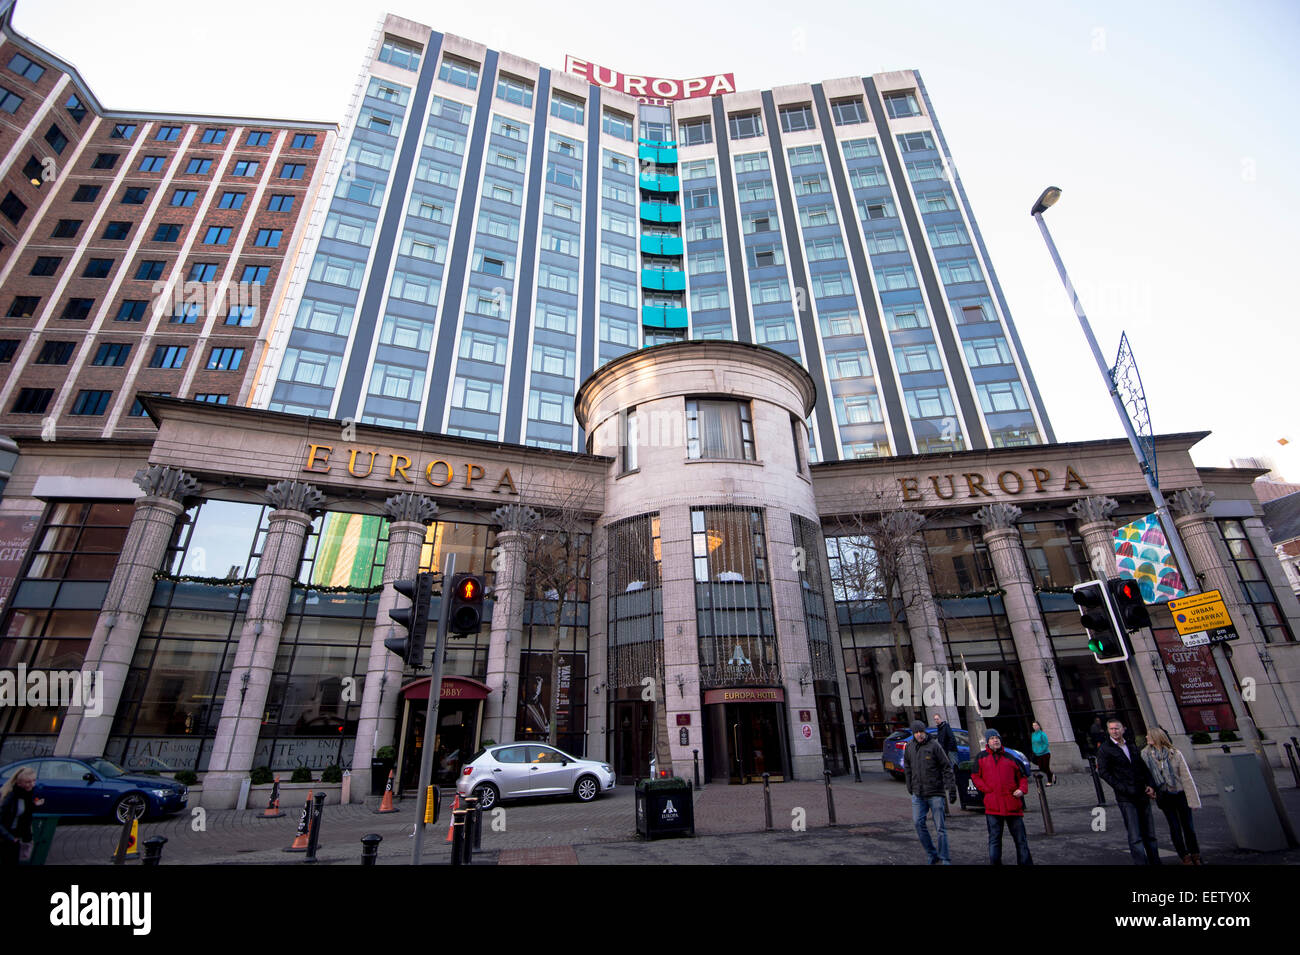 The hotel Europa which is the most bombed hotel in Europe suffering 28 bomb attacks during the troubles, Belfast. - Stock Image